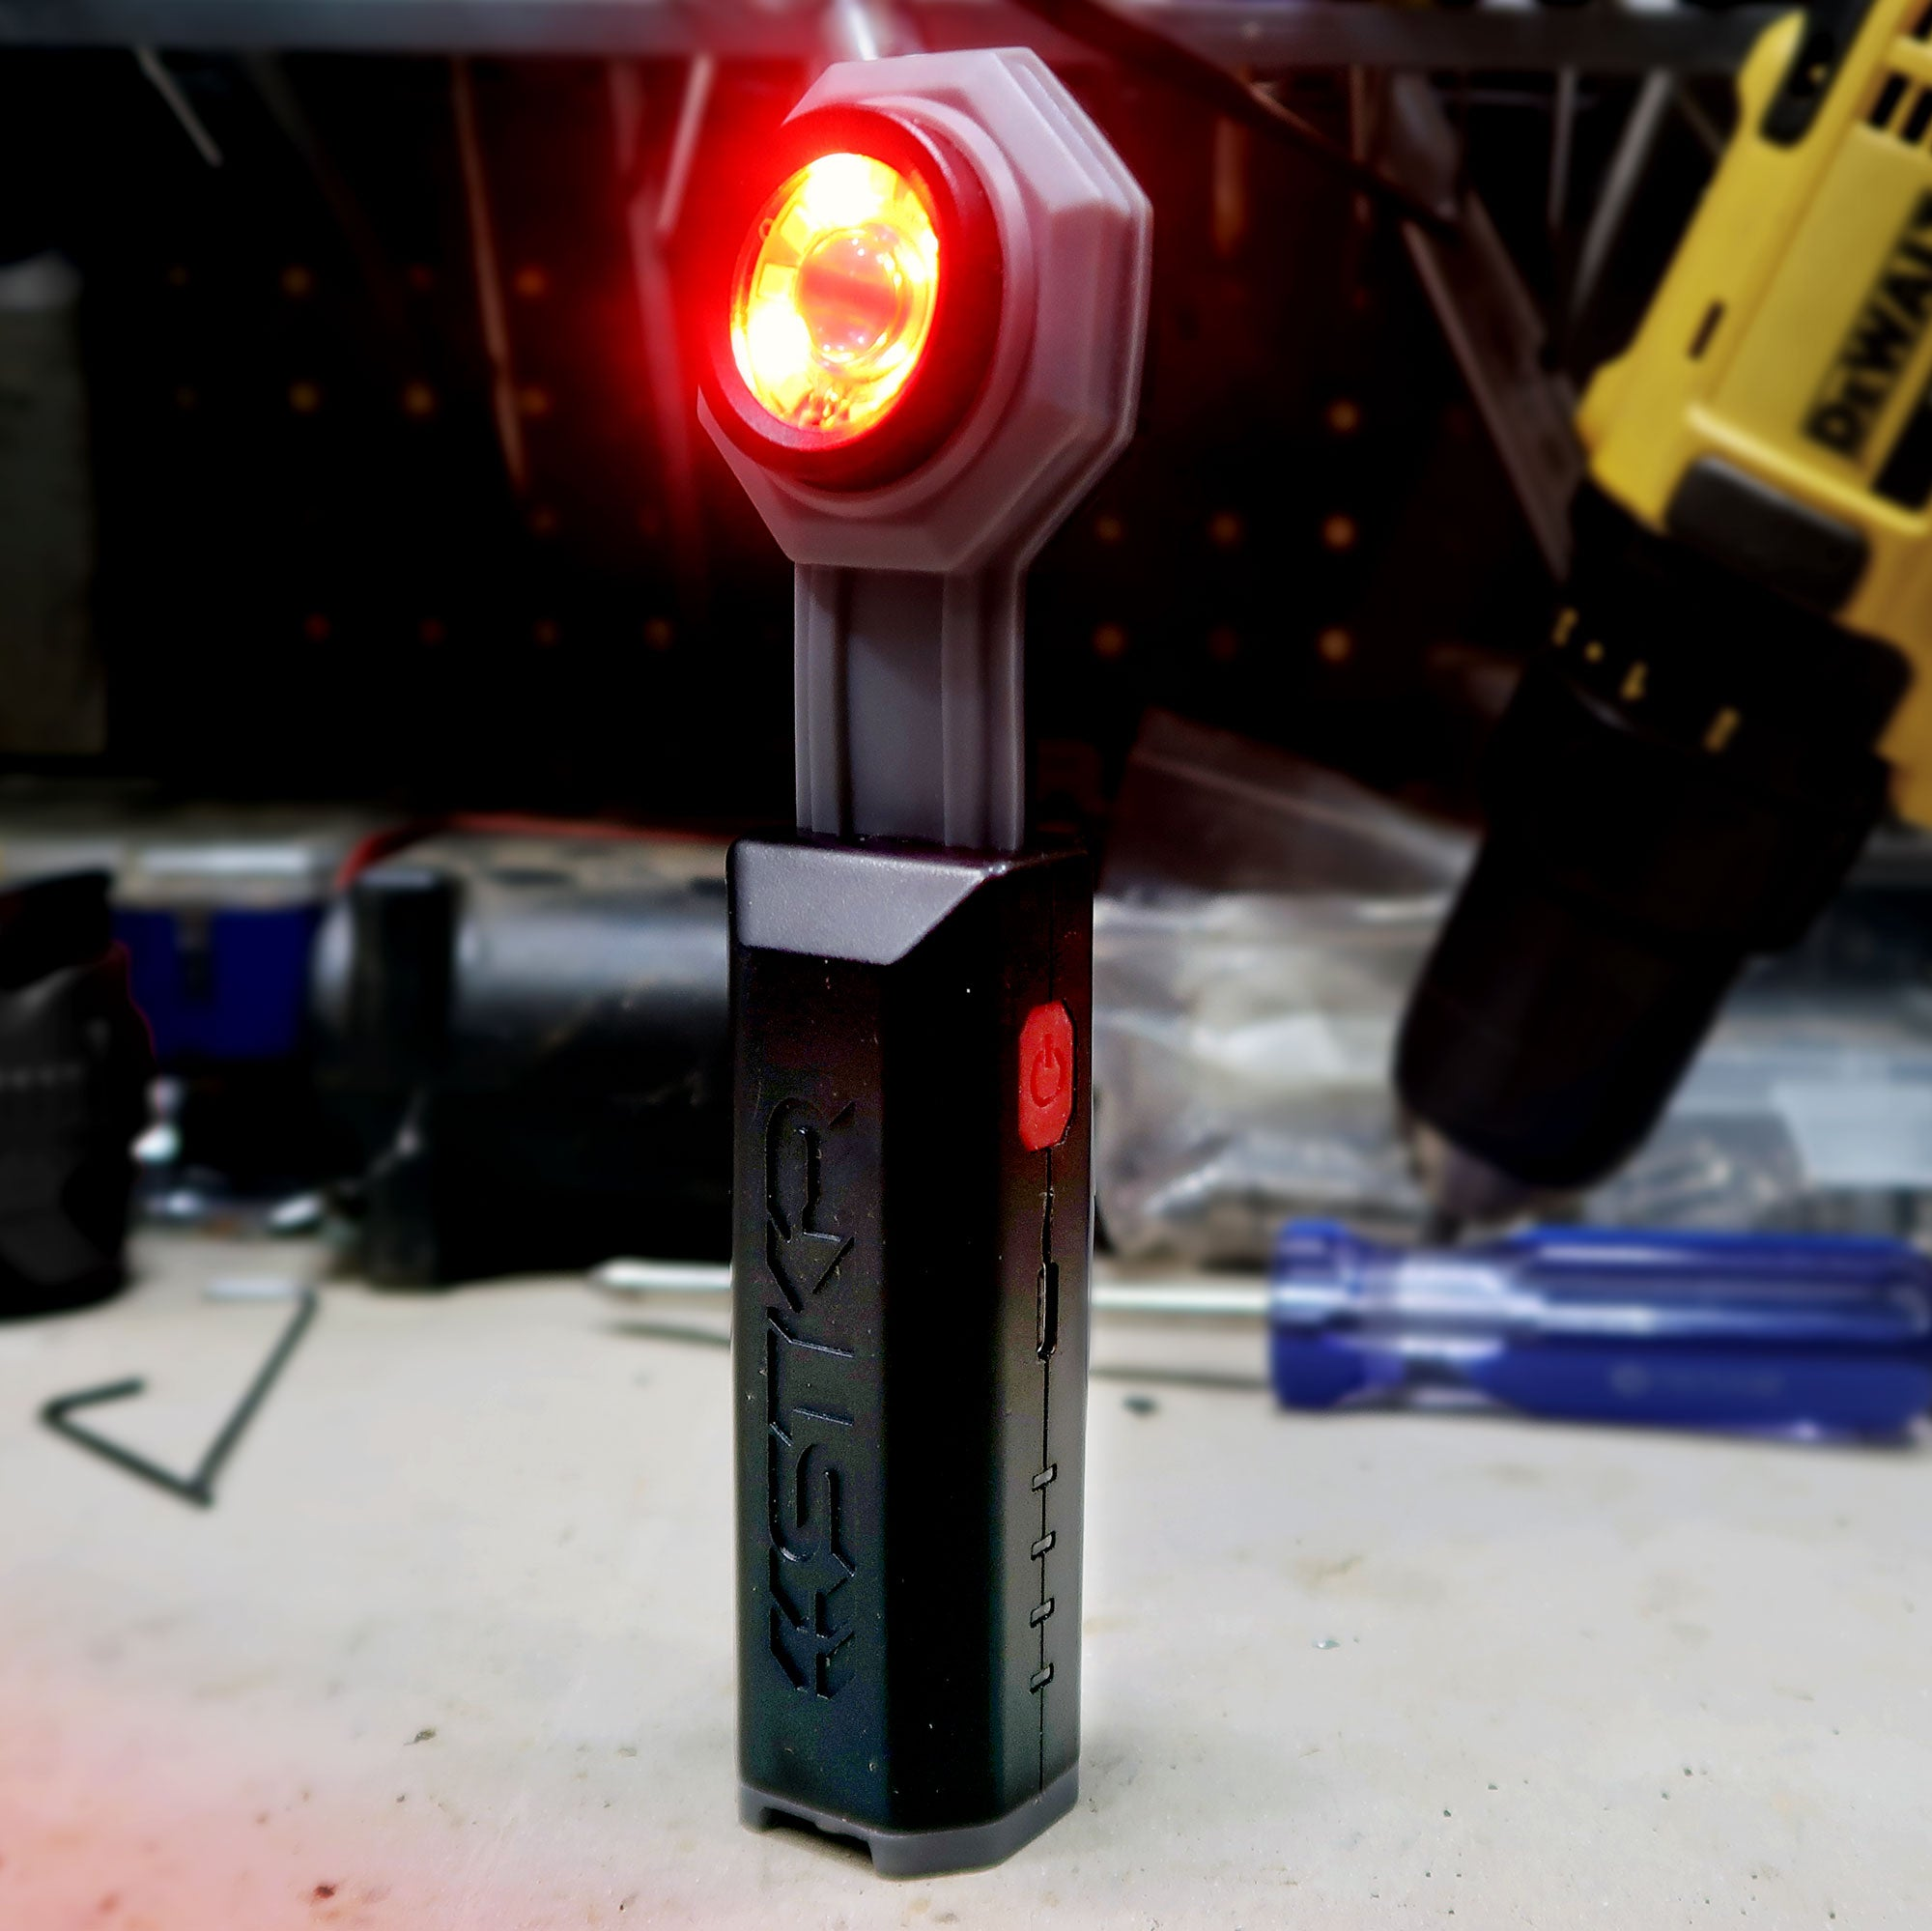 FLEXIT Pocket Light features red night vision LEDs